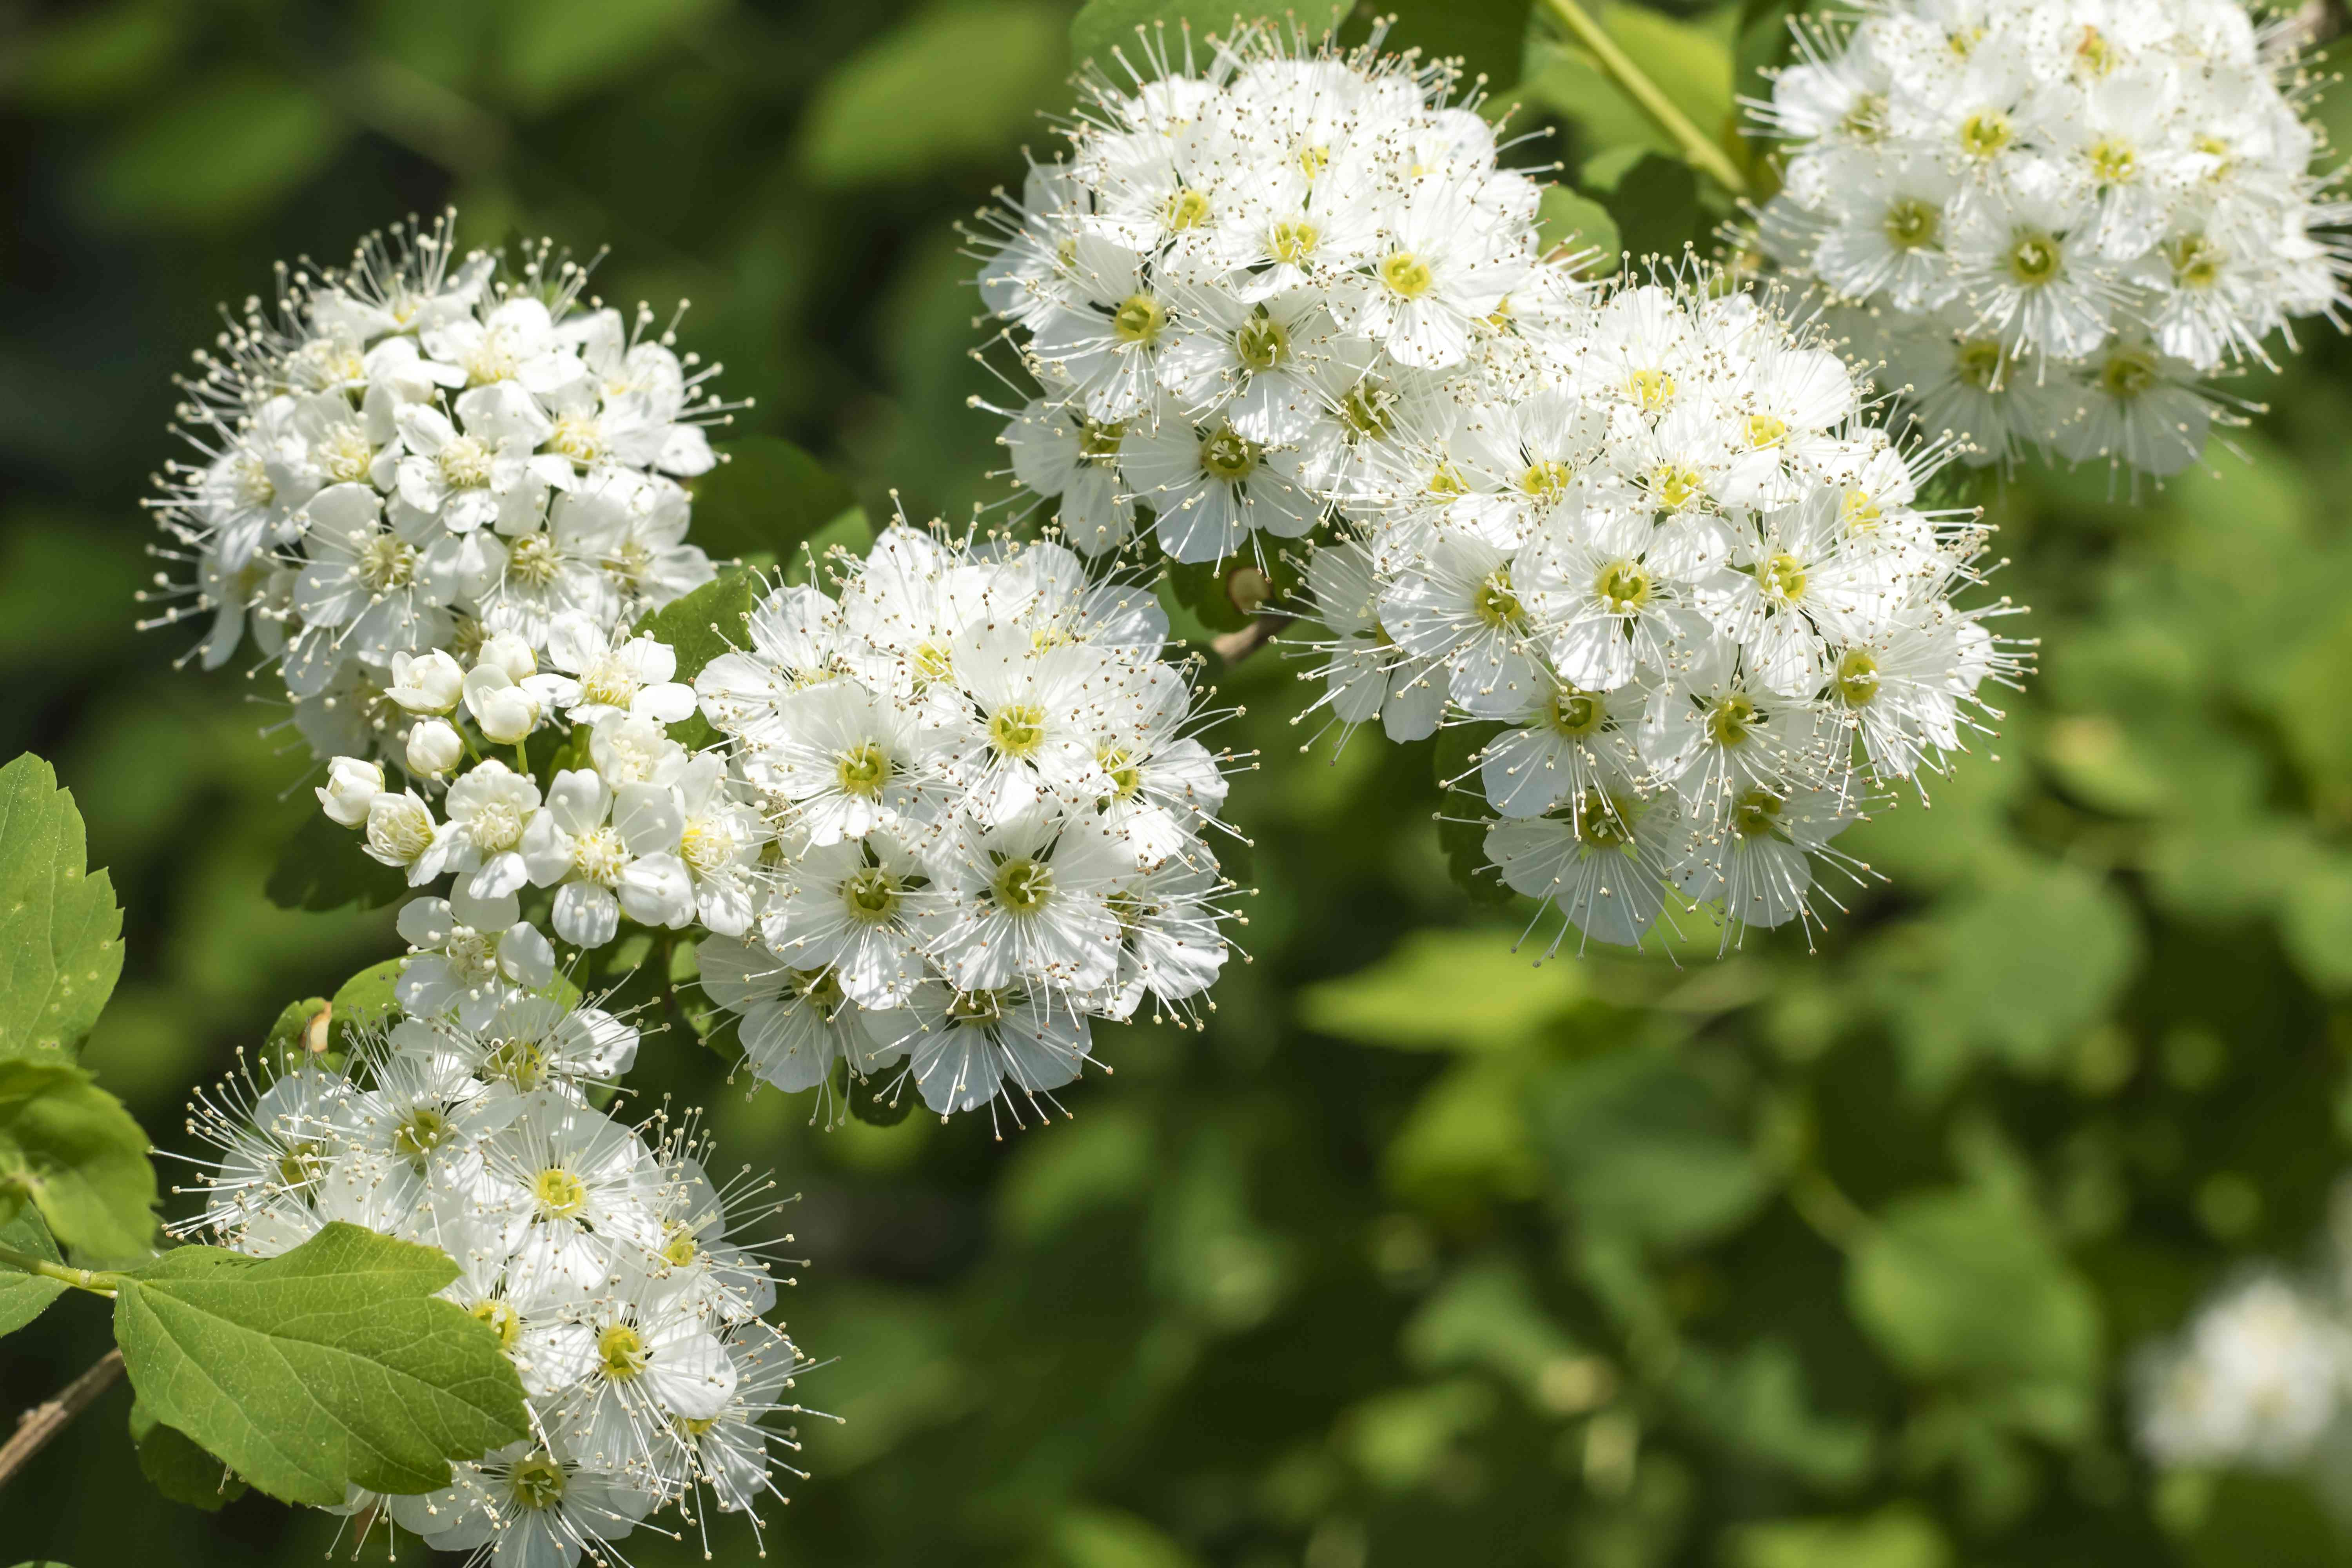 Beautiful branch with white flowers. Viburnum lentago (Nannyberry)